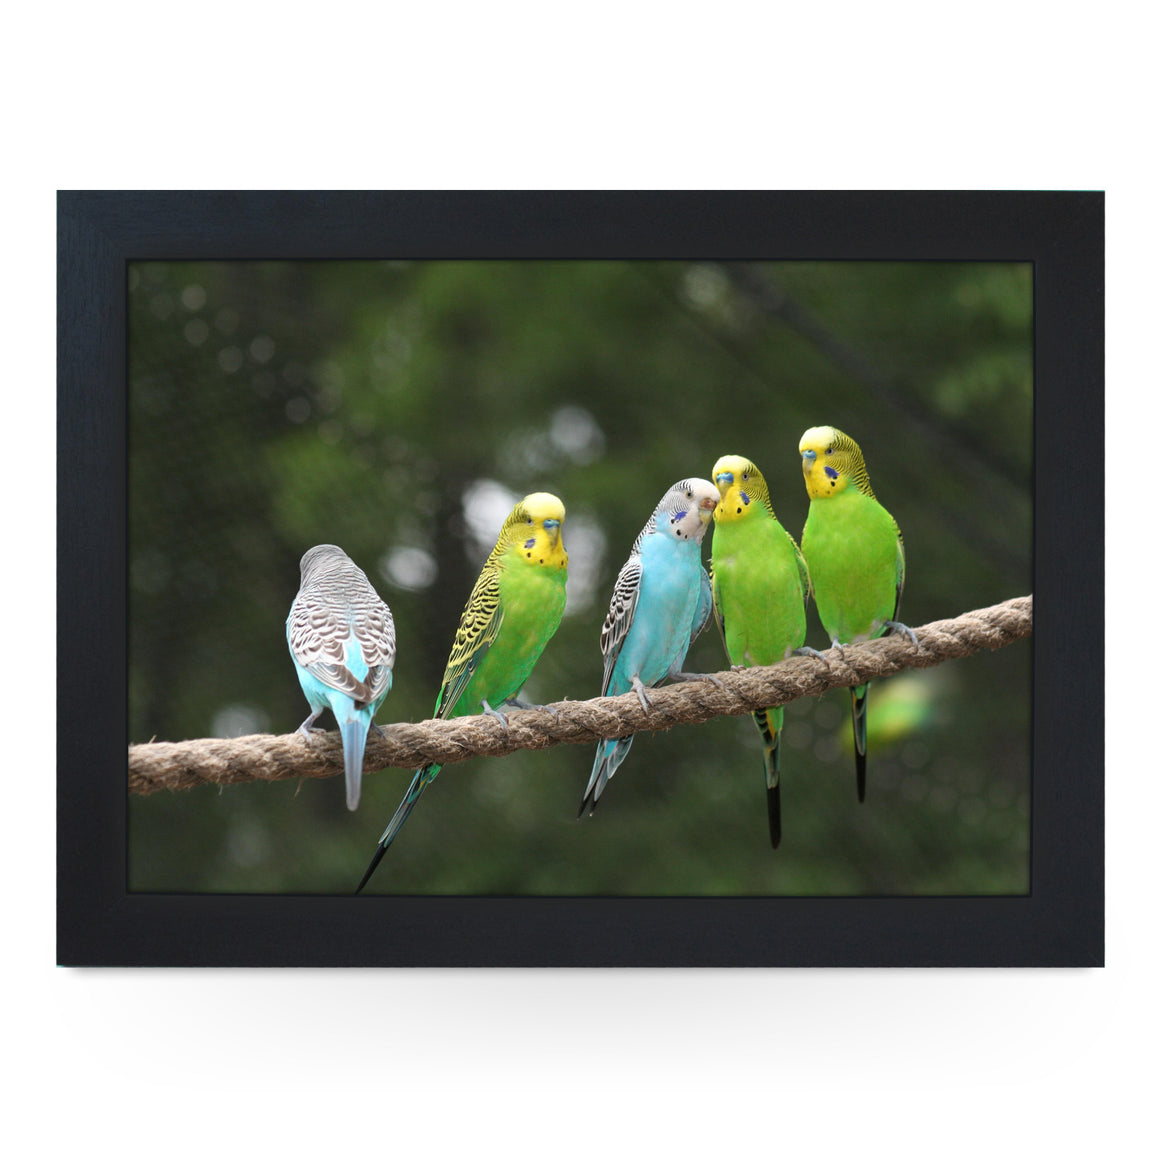 Budgies on a Rope Lap Tray - L0175